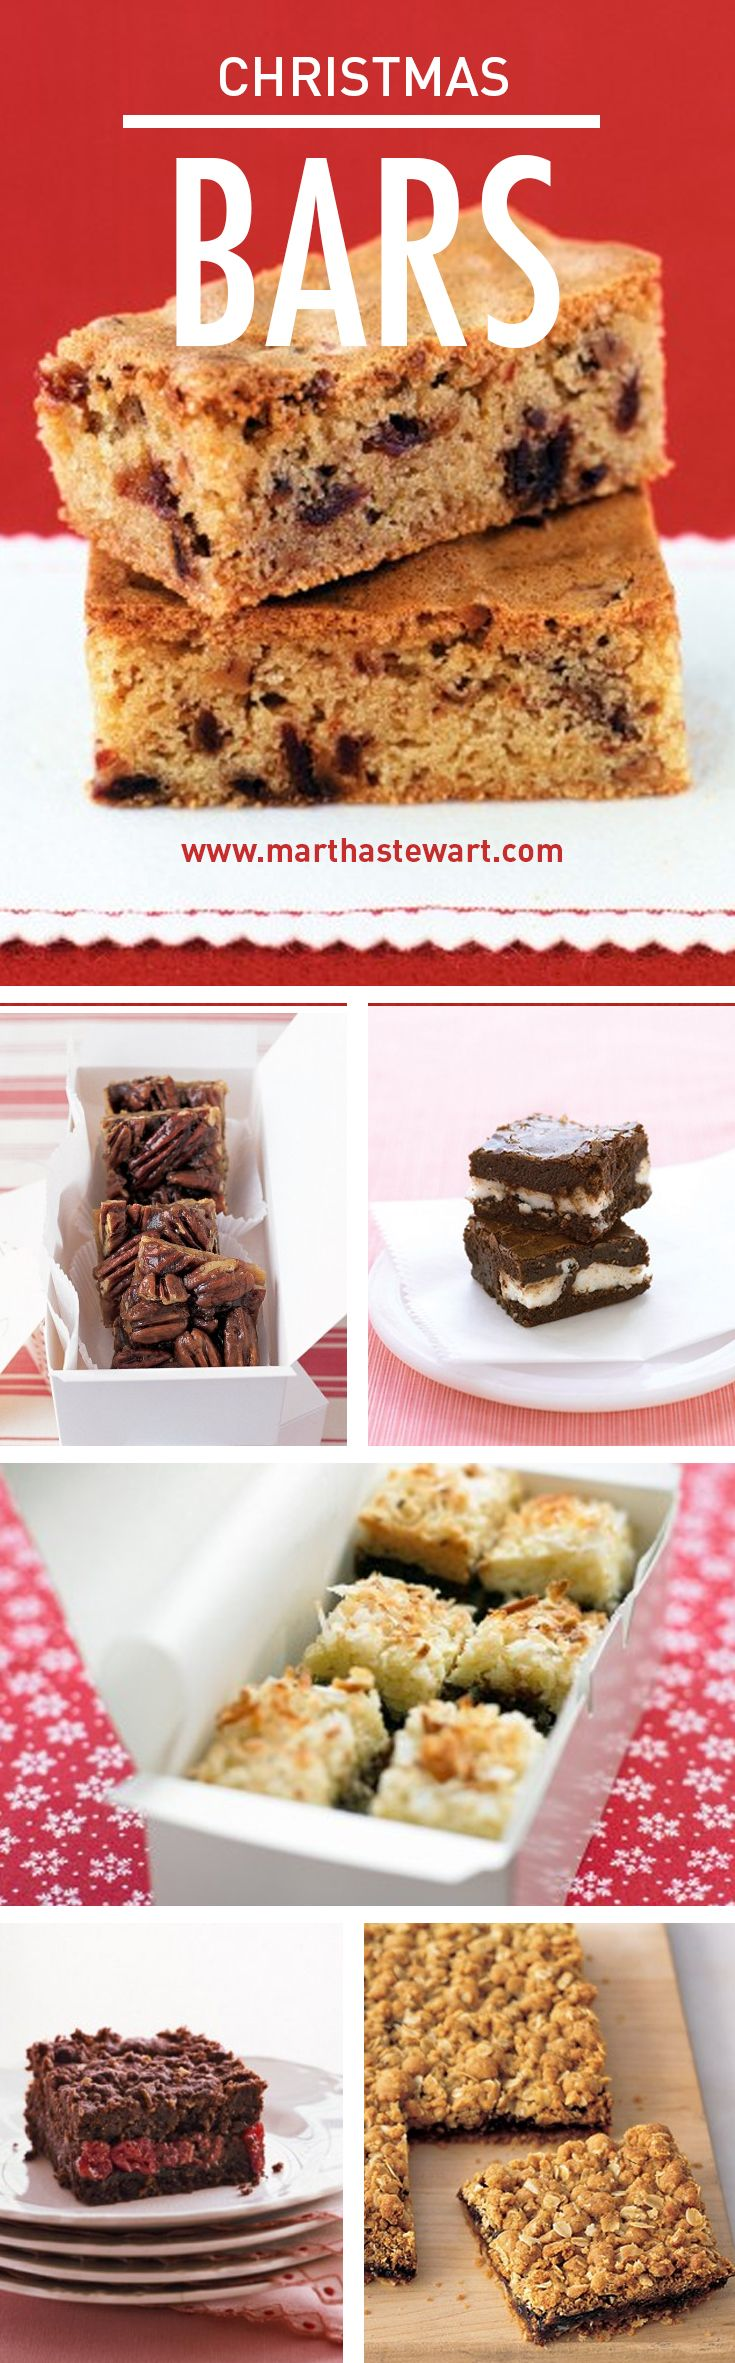 choose from dozens of tempting bar cookie recipes including coconut chocolate pecan lemon chocolate mint cheesecake bars and many more christmas - Christmas Bar Cookies